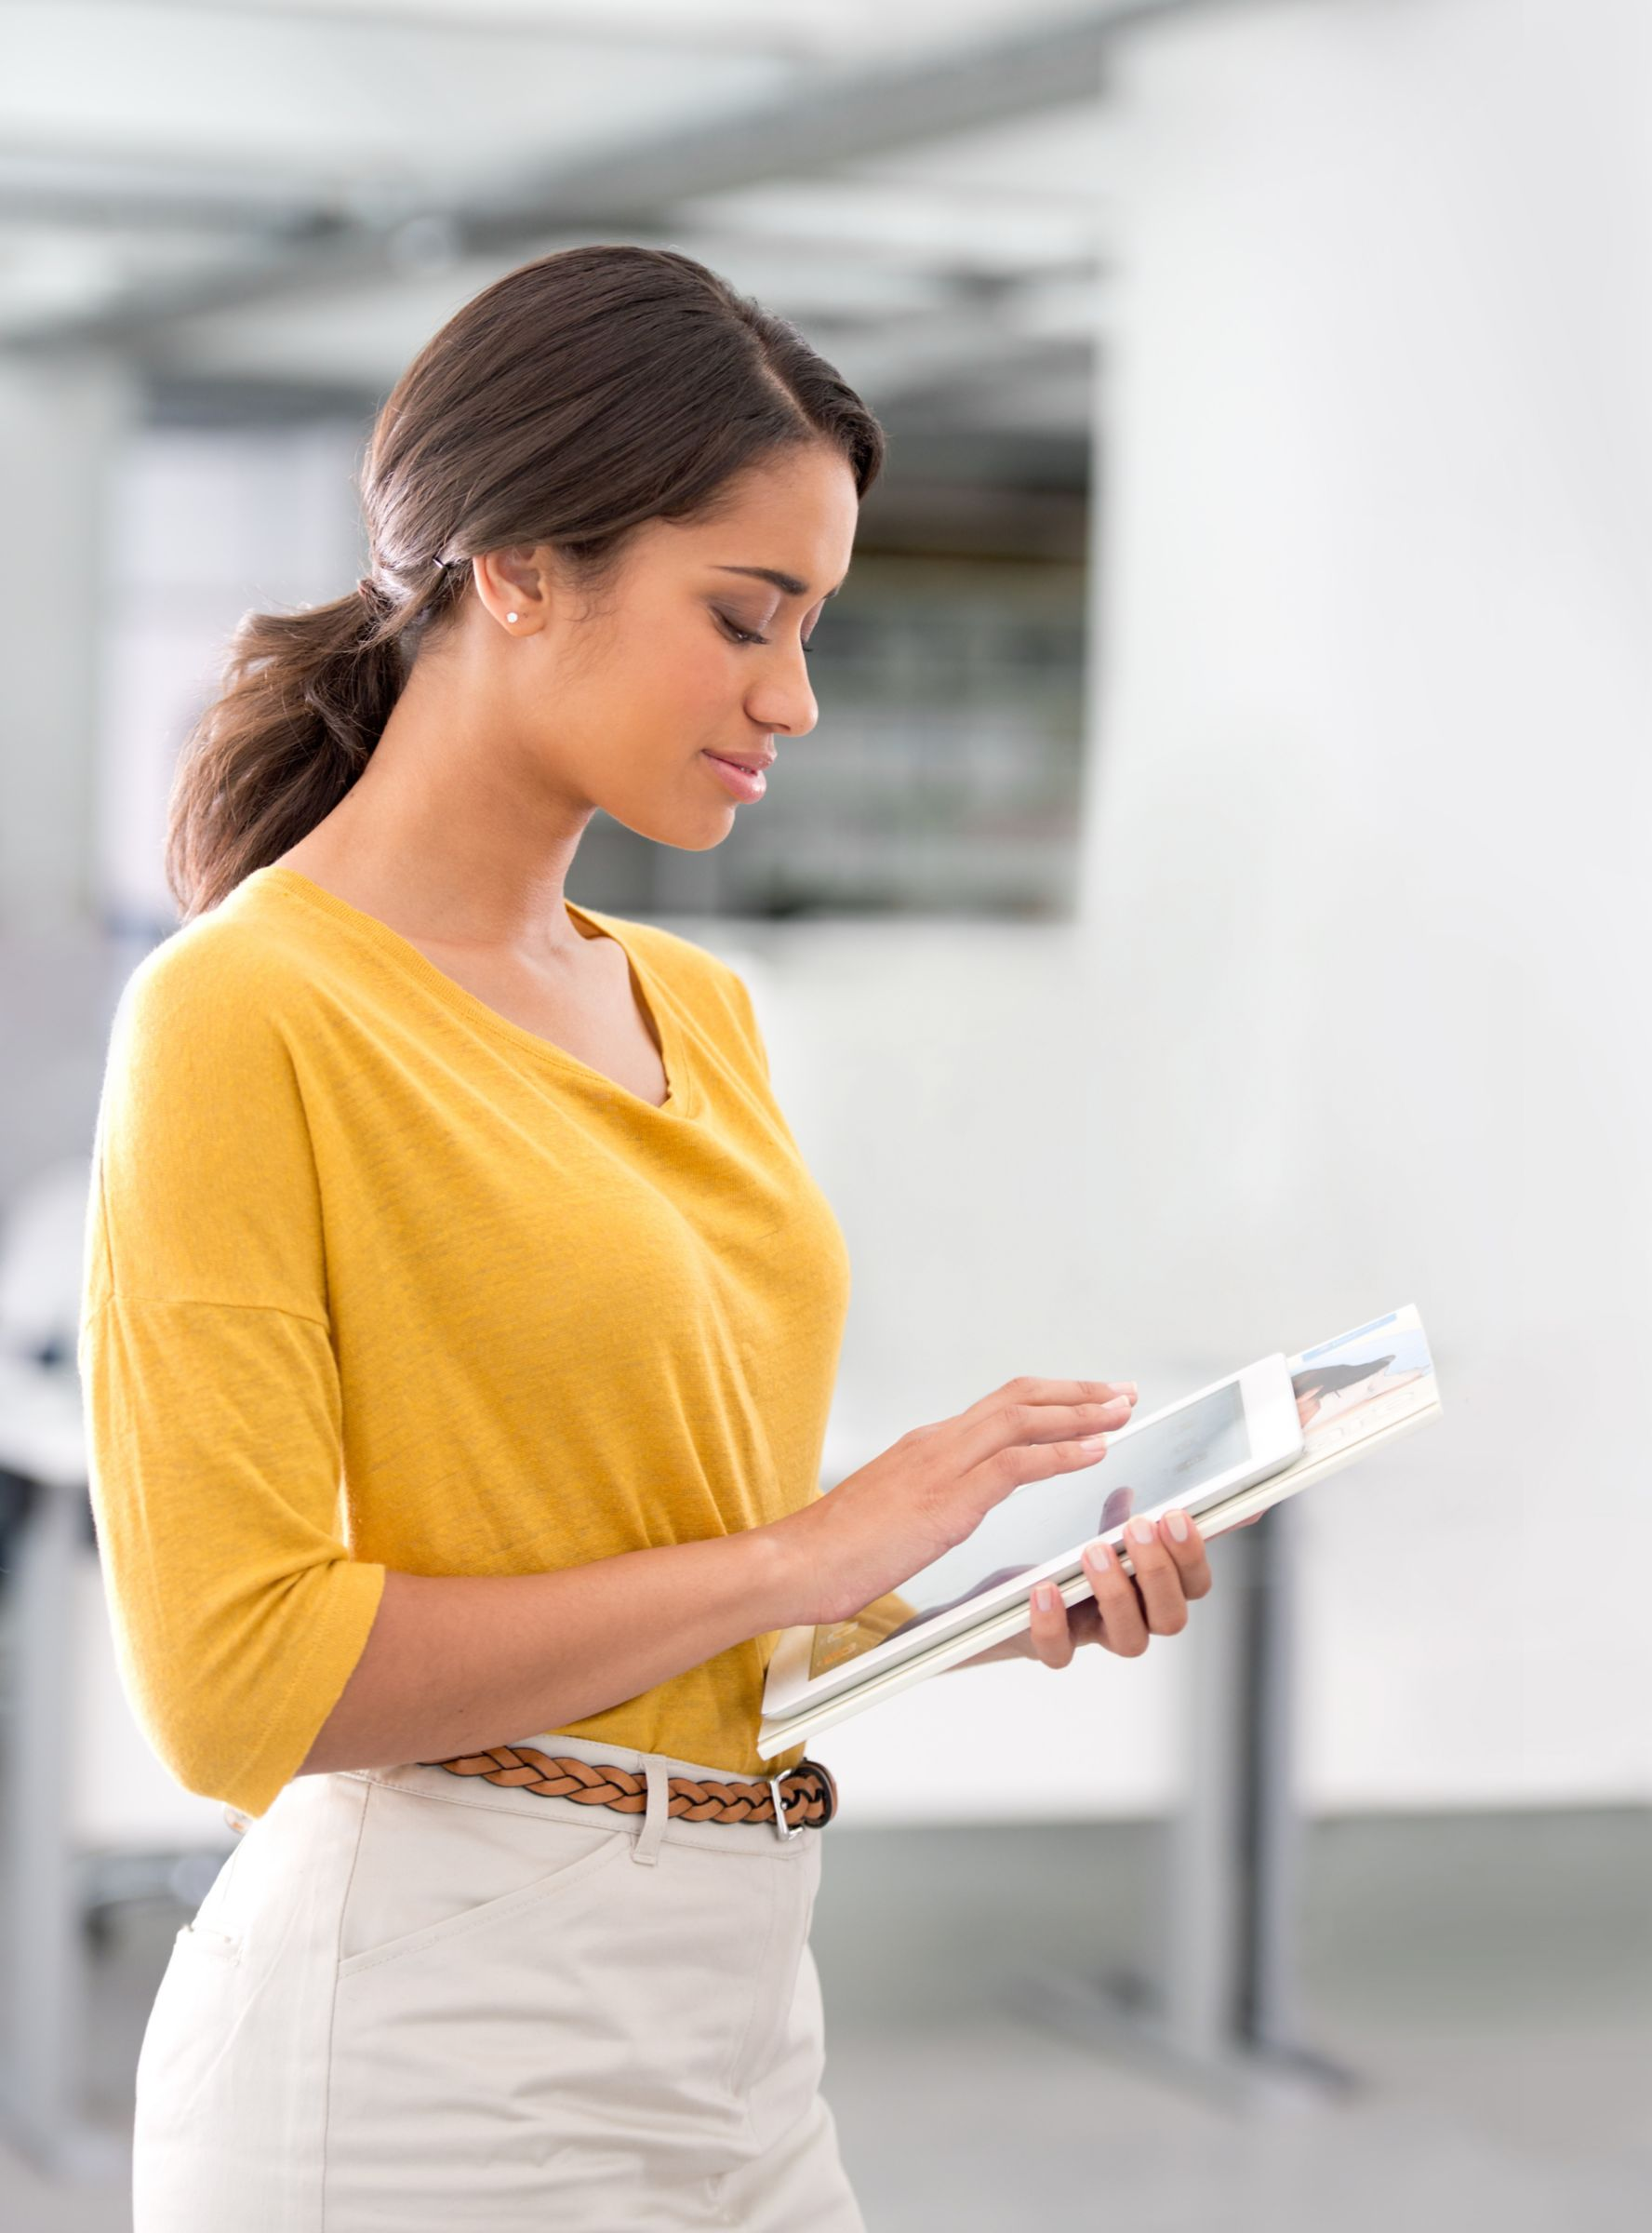 woman engaging with tablet